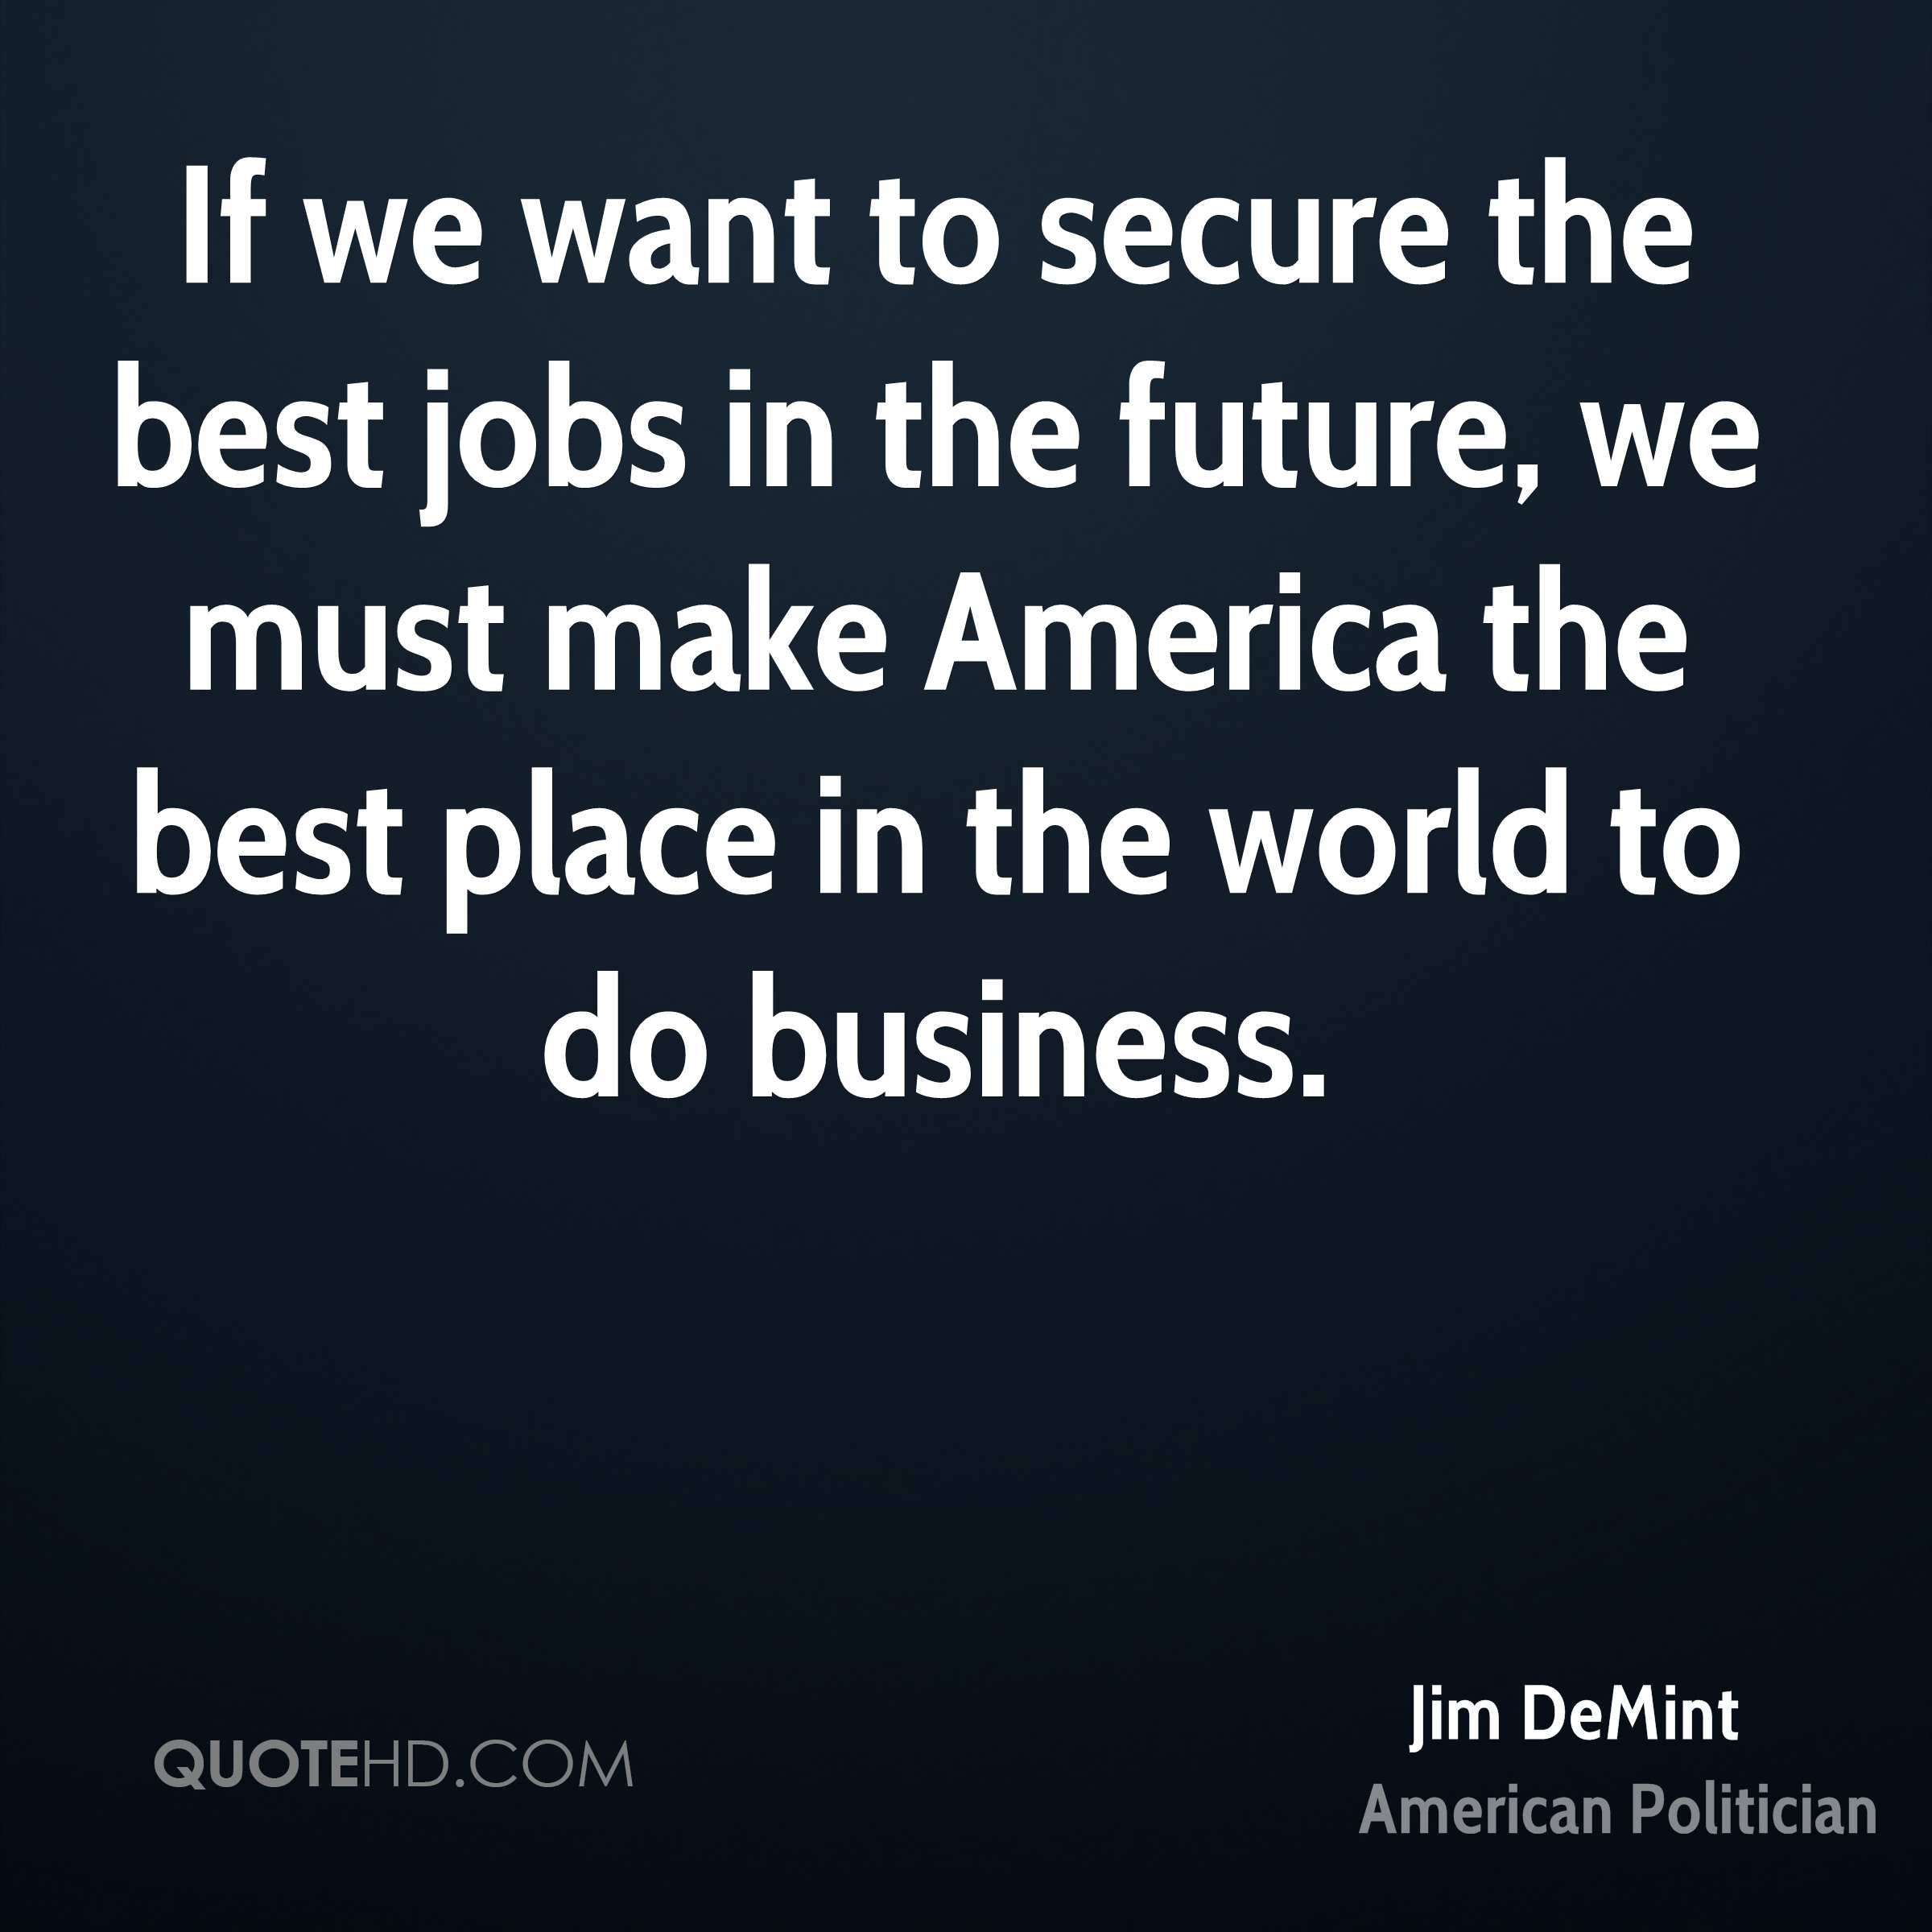 If we want to secure the best jobs in the future, we must make America the best place in the world to do business.